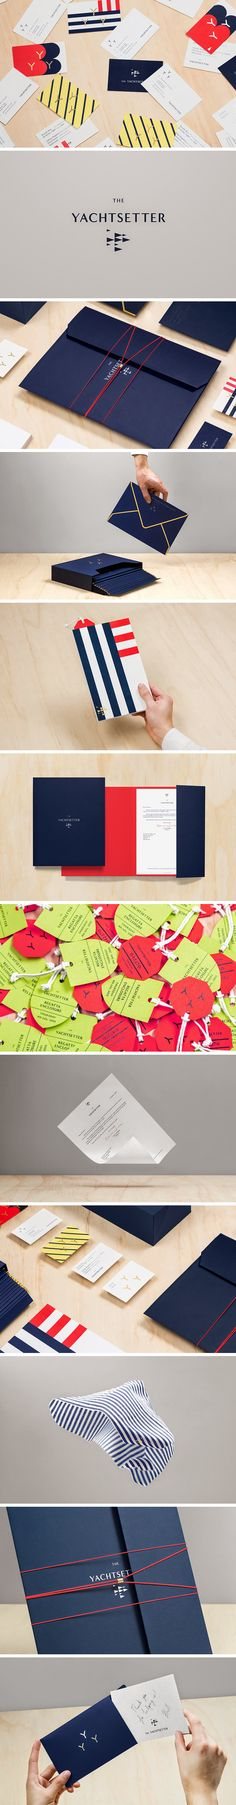 dans-ta-pub-creation-brand-identity-compilation-5